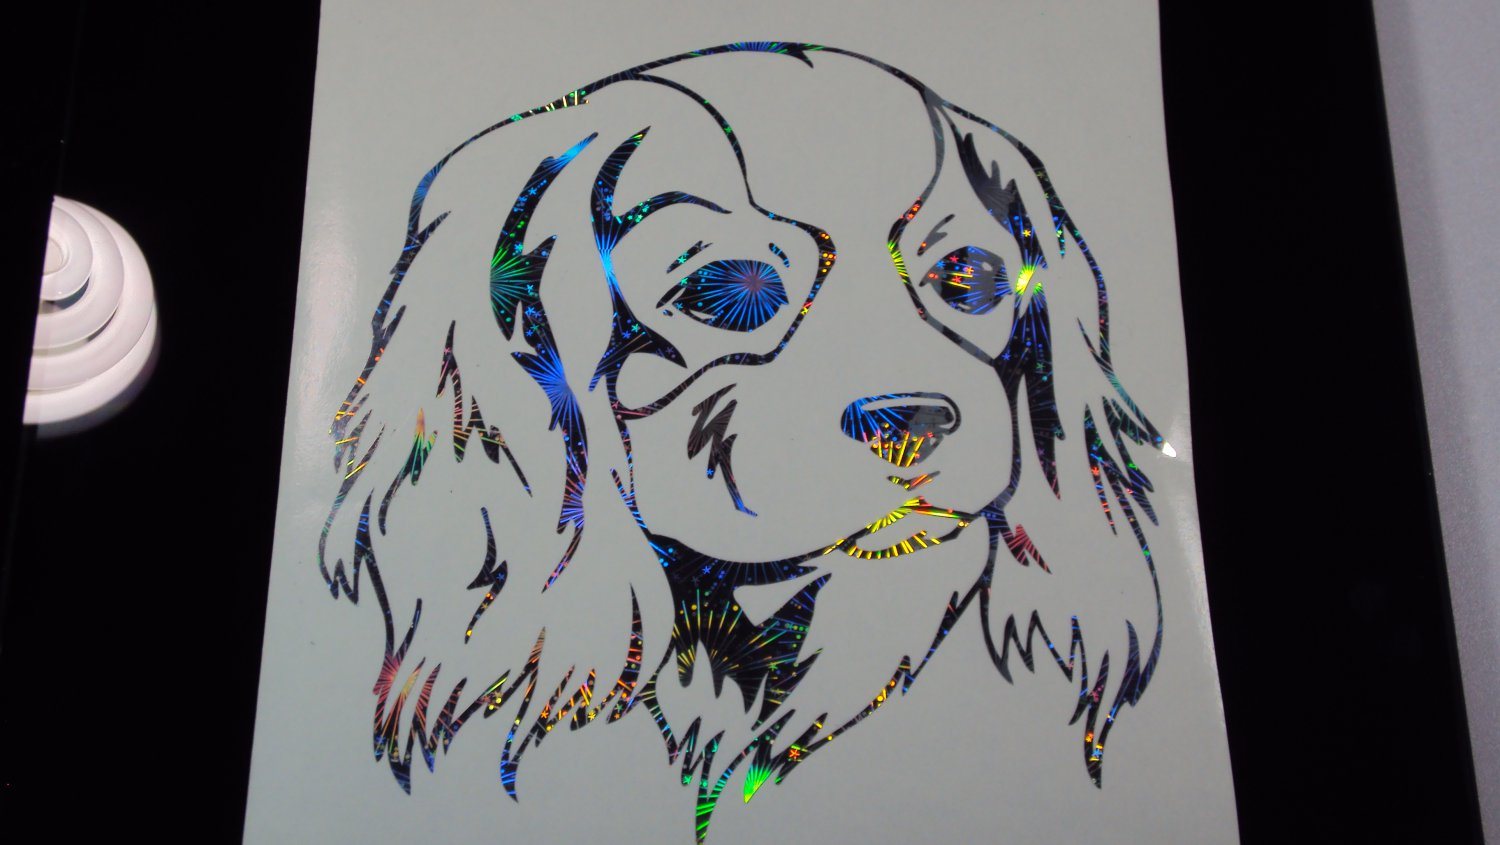 Cavalier King Charles lap dog Toy Spaniel Dog Breed Holo FW Car Window Laptop Decal